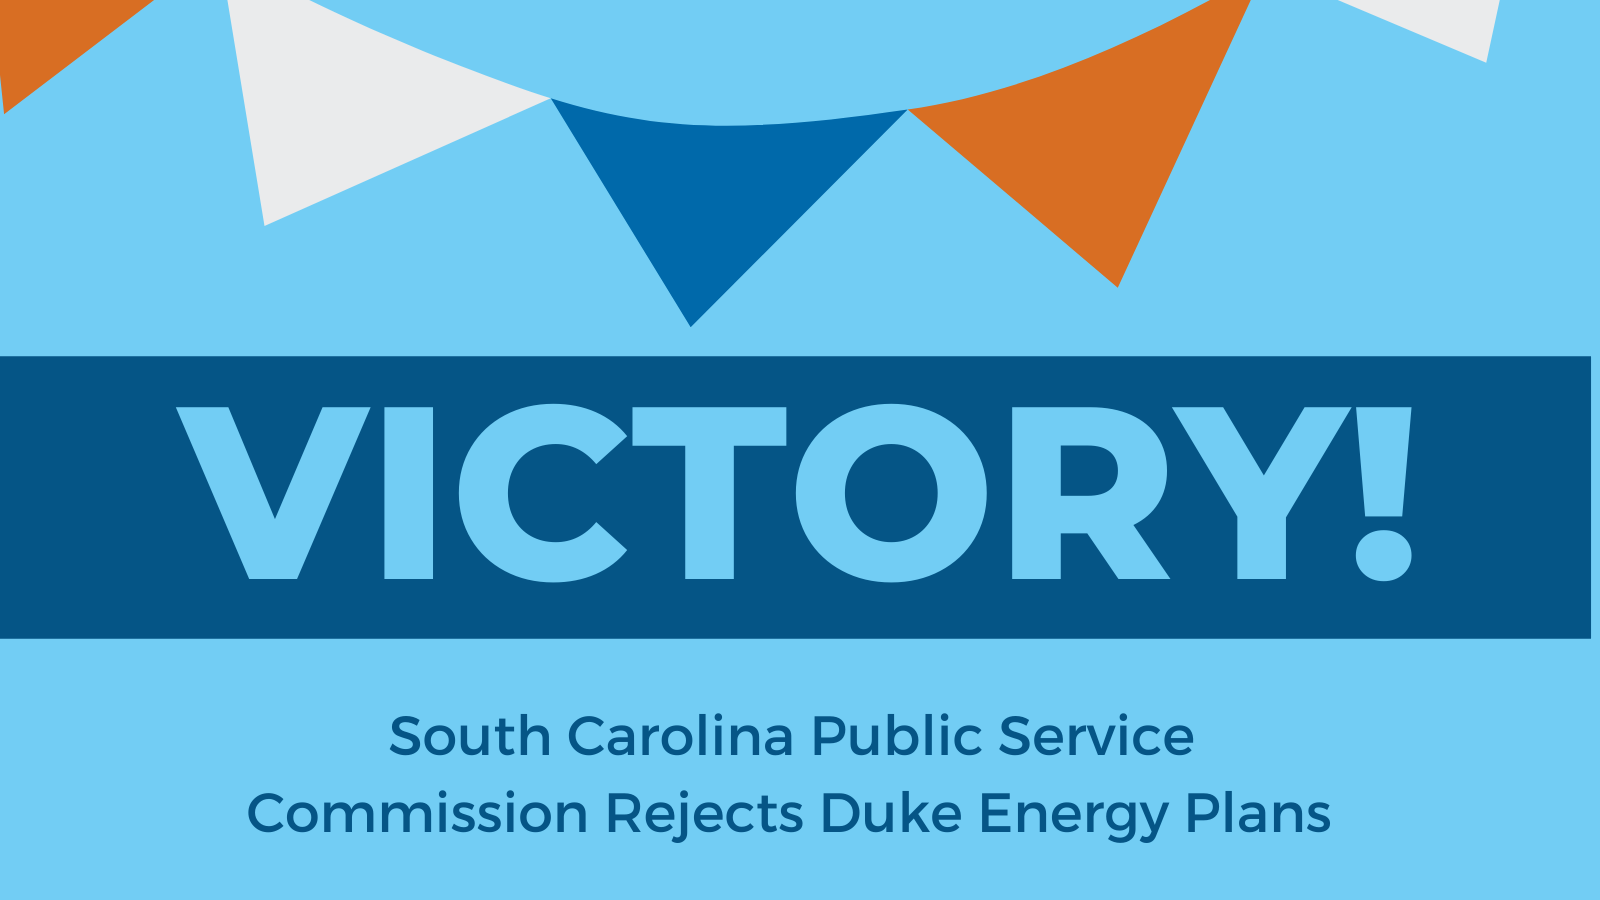 Major collective victories for clean energy, energy justice, and freedom from fossil fuel pollution